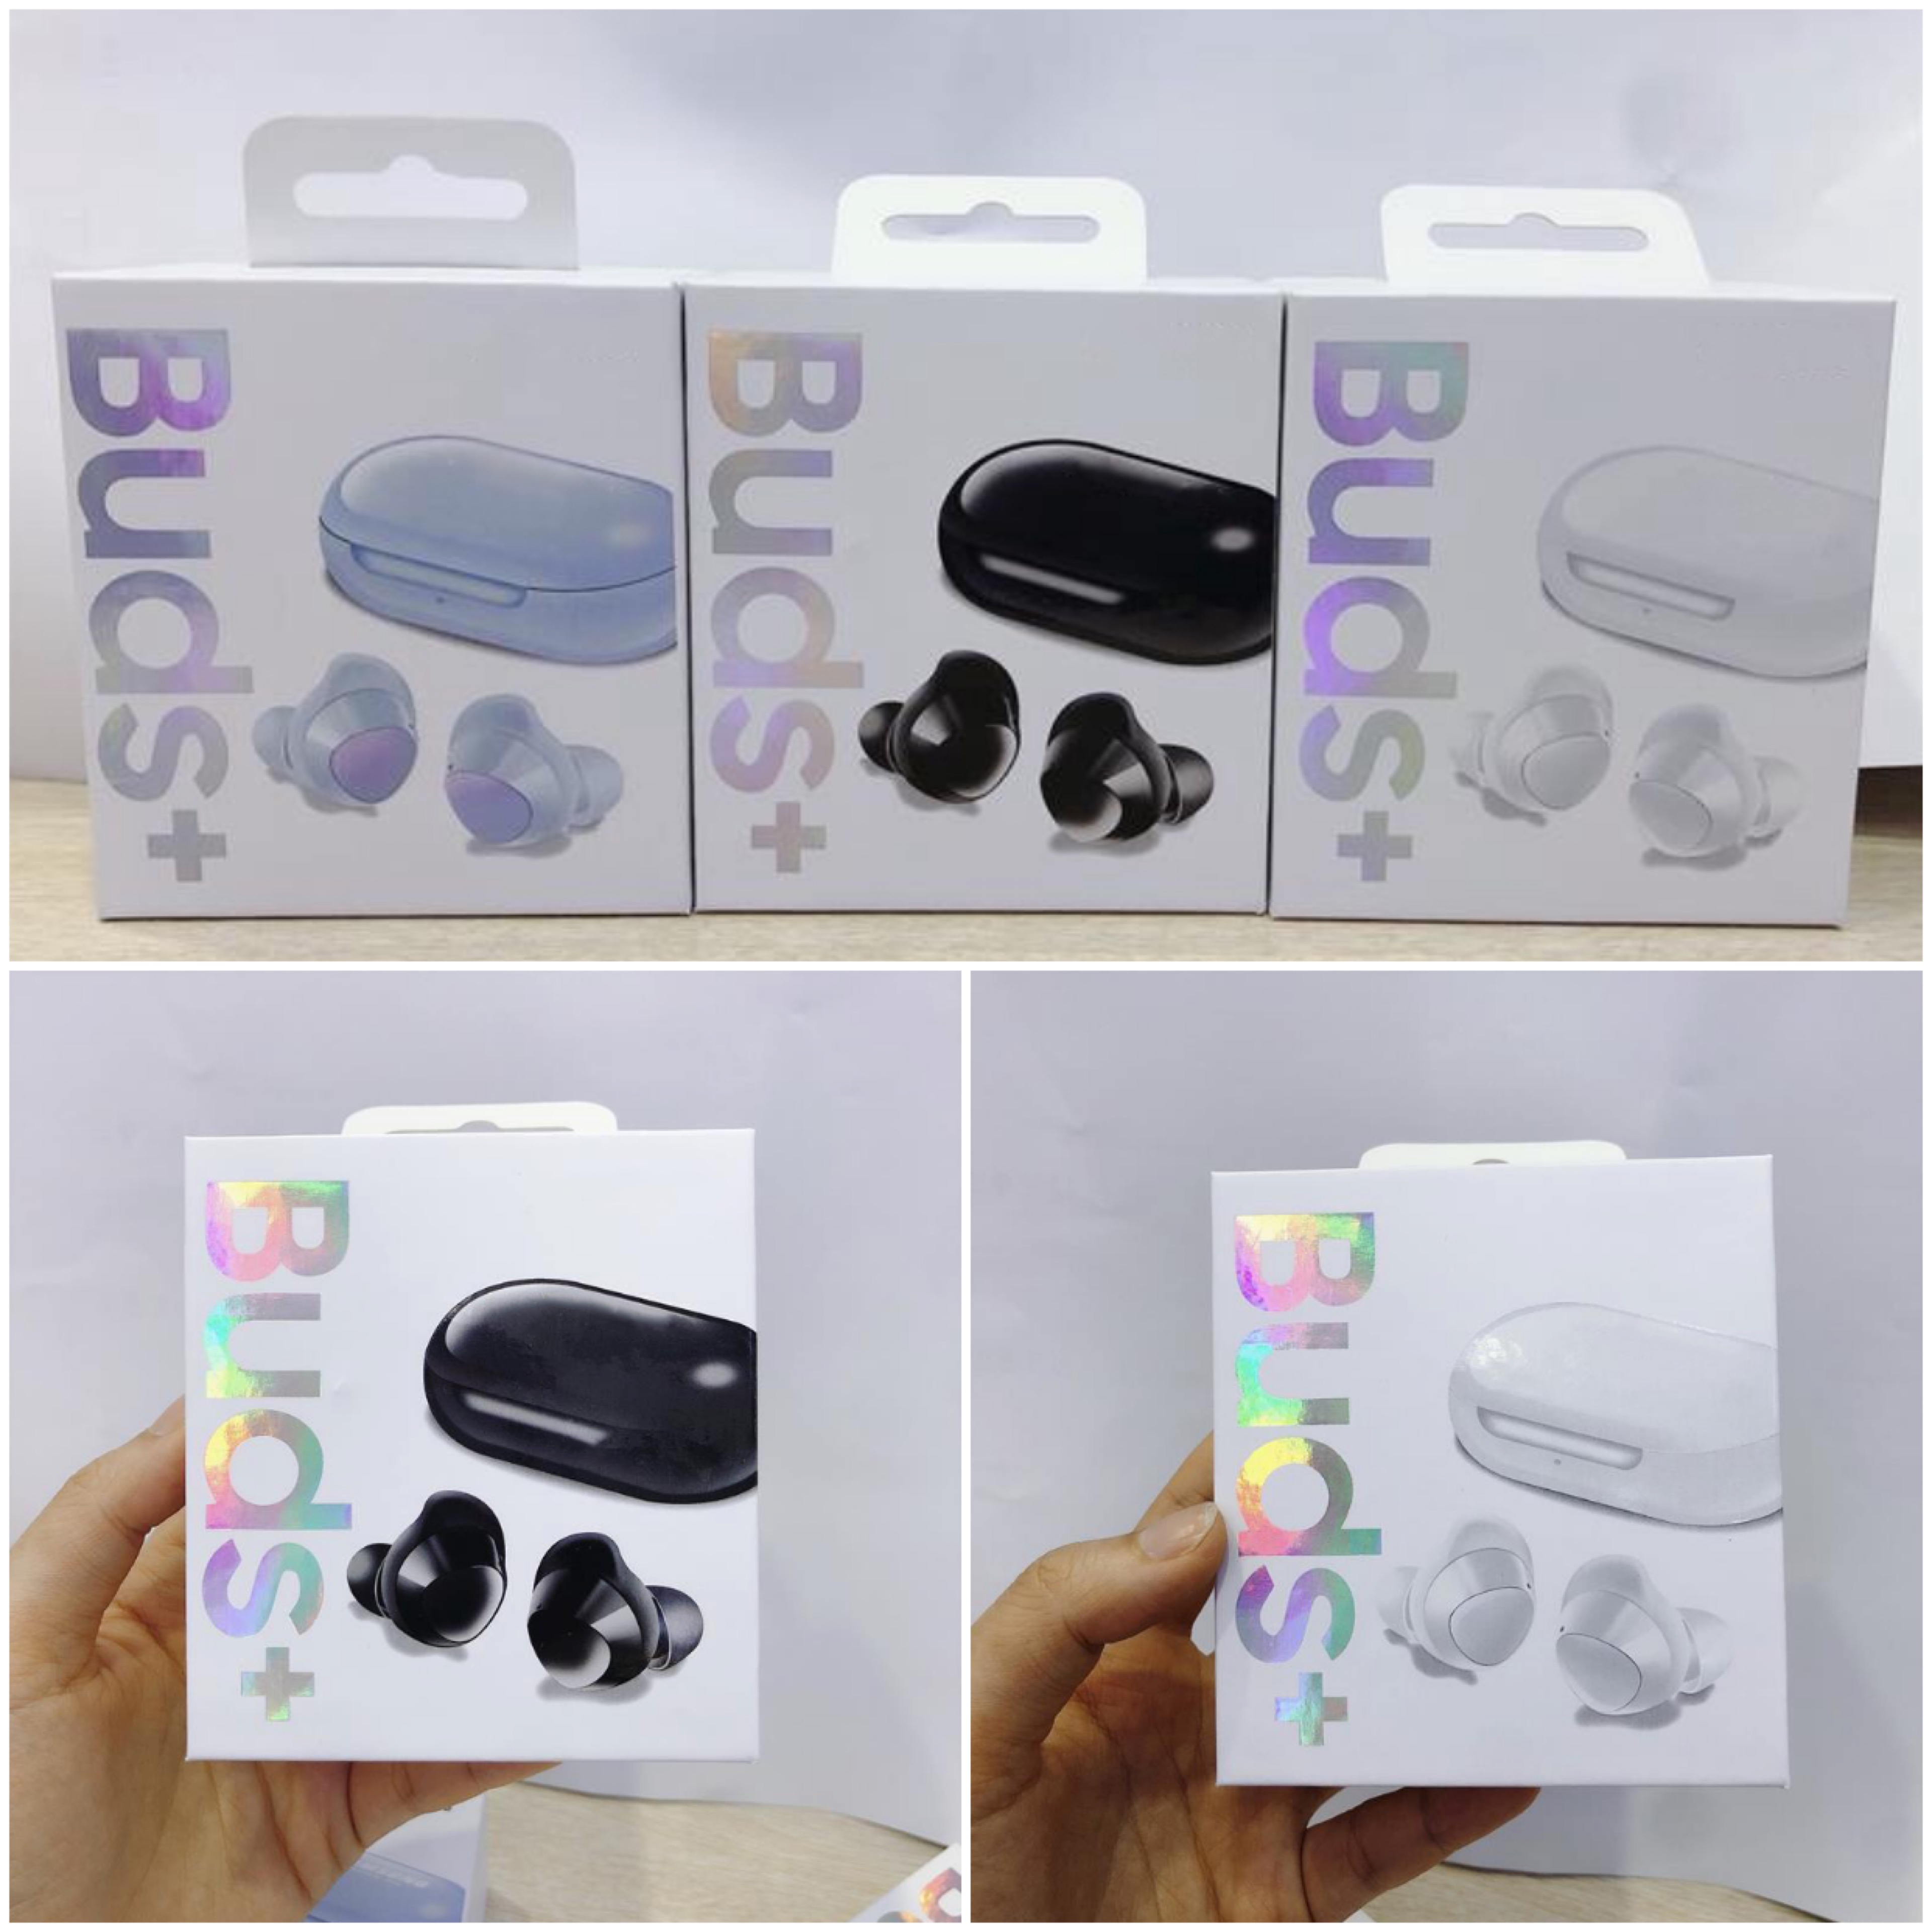 Discount Earphones Mic Bluetooth Android Earphones Mic Bluetooth Android 2020 On Sale At Dhgate Com